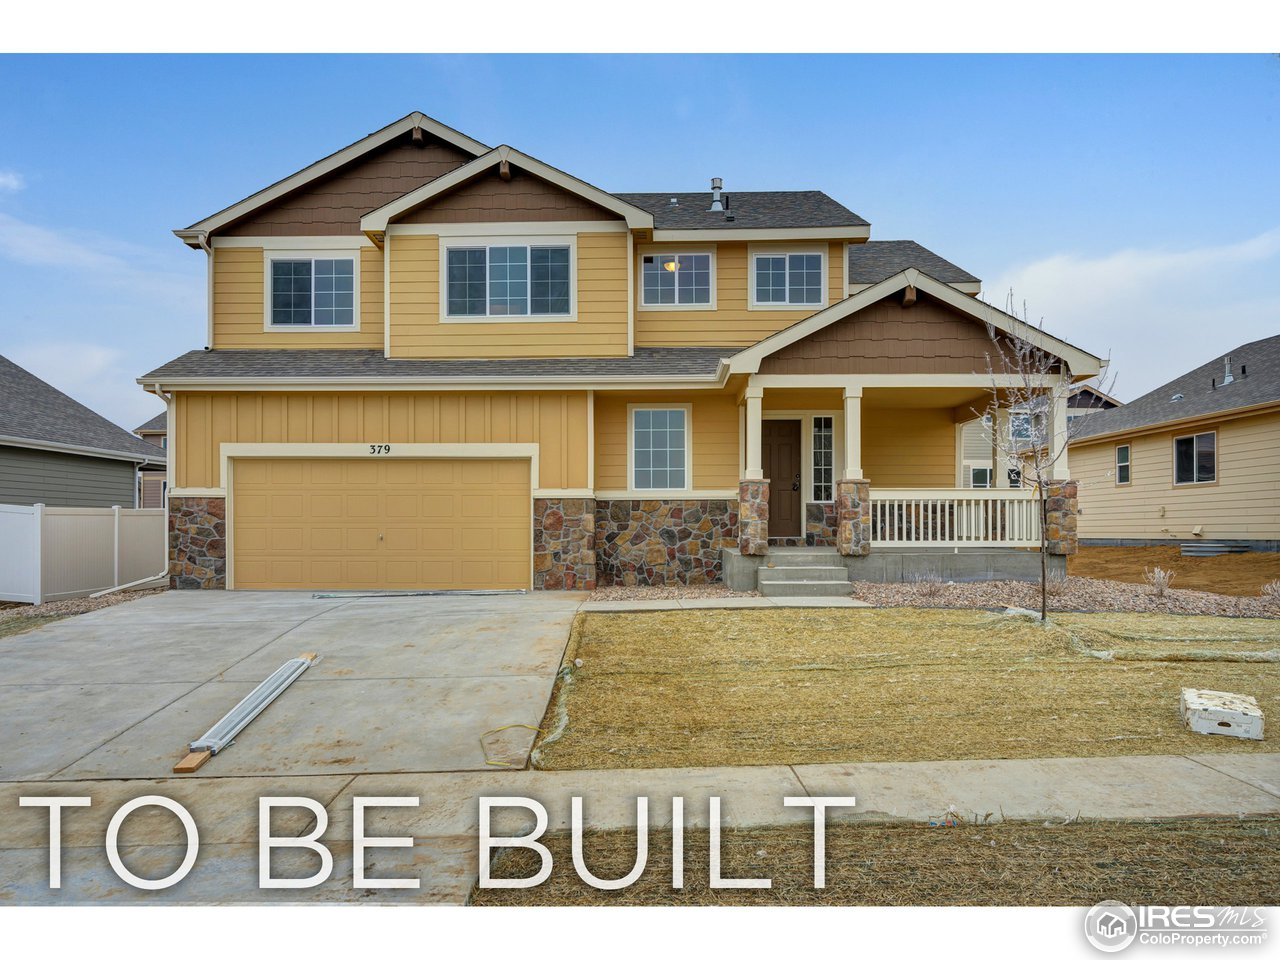 The Saratoga is a 3-bedroom, 2-1/2 bath, 2 story home with 1738 finished sq. ft. unfinished basement. The open floor plan flows so nicely with the substantial living room flowing into the spacious kitchen/dining area. An over sized 3-car tandem garage makes this a complete package. The legacy finish on this home with hardwood flooring the entry/kitchen & dining areas, two-tone paint & upgraded kitchen splash tiling.